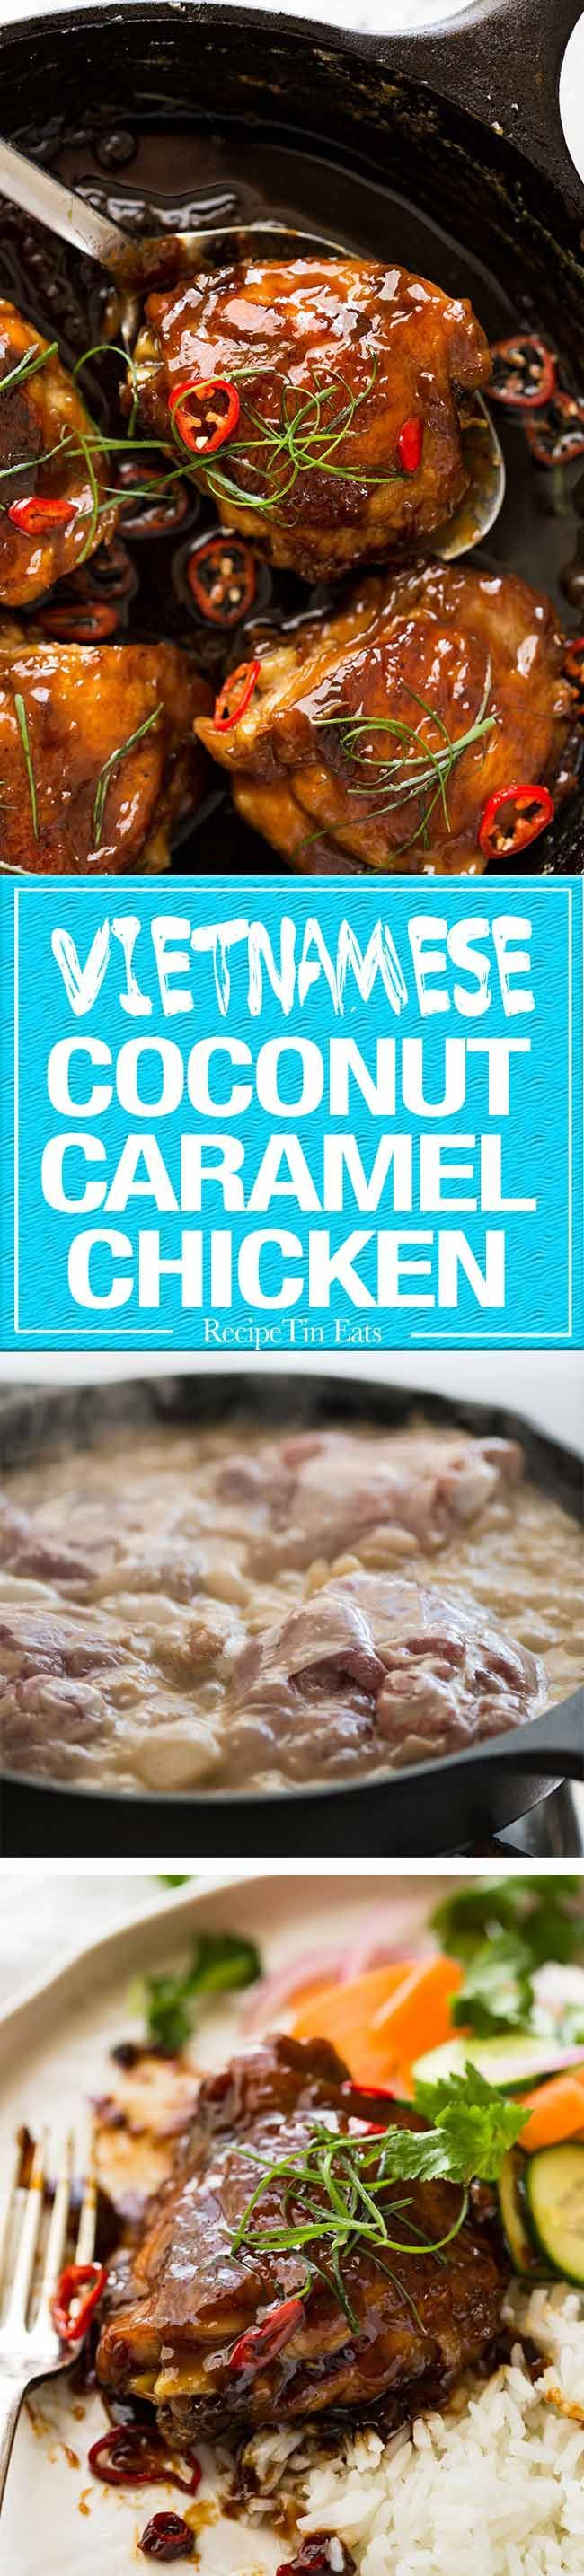 Vietnamese Coconut Caramel Chicken - 7 ingredient magic. The coconut fragrance is heavenly!